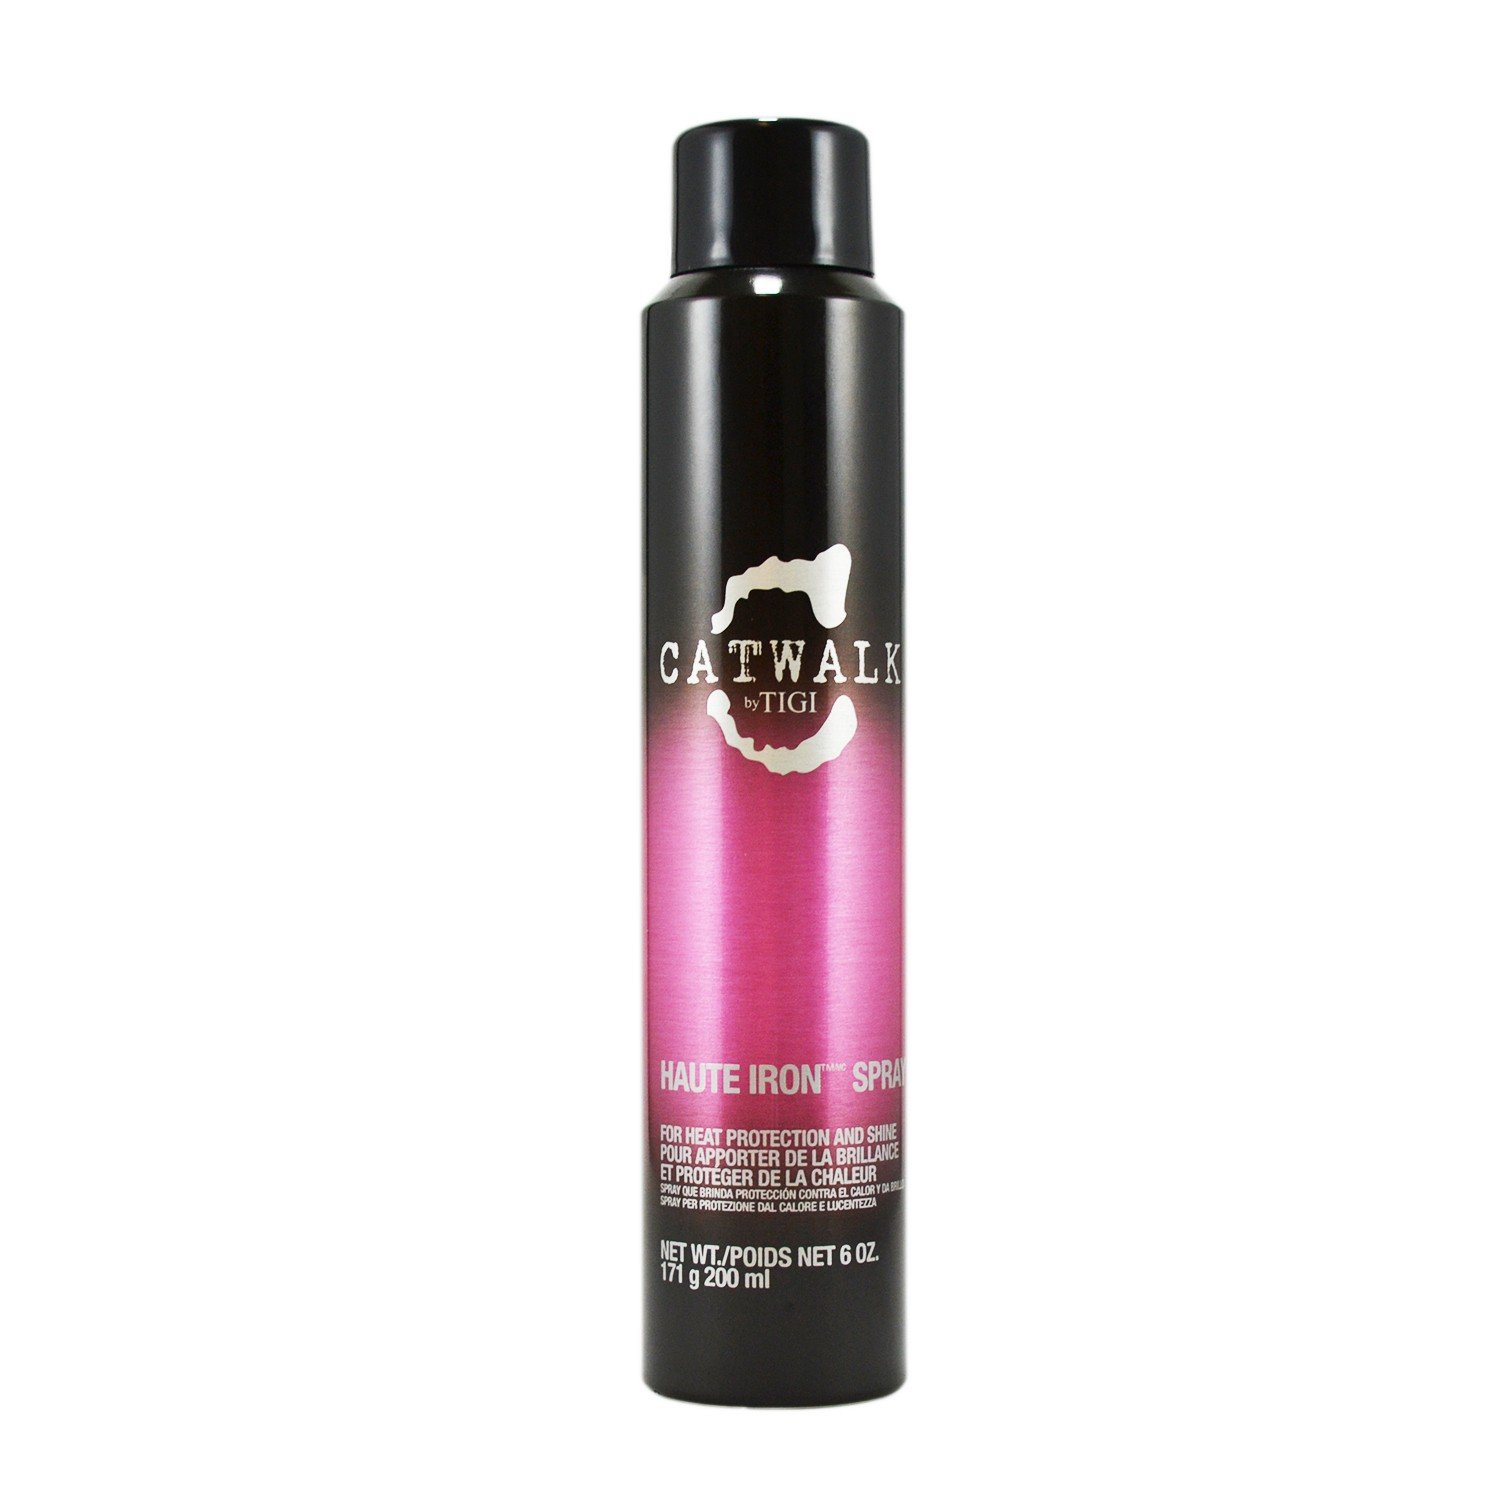 Tigi CATWALK sleek mystique haute iron spray 200 ml 37492